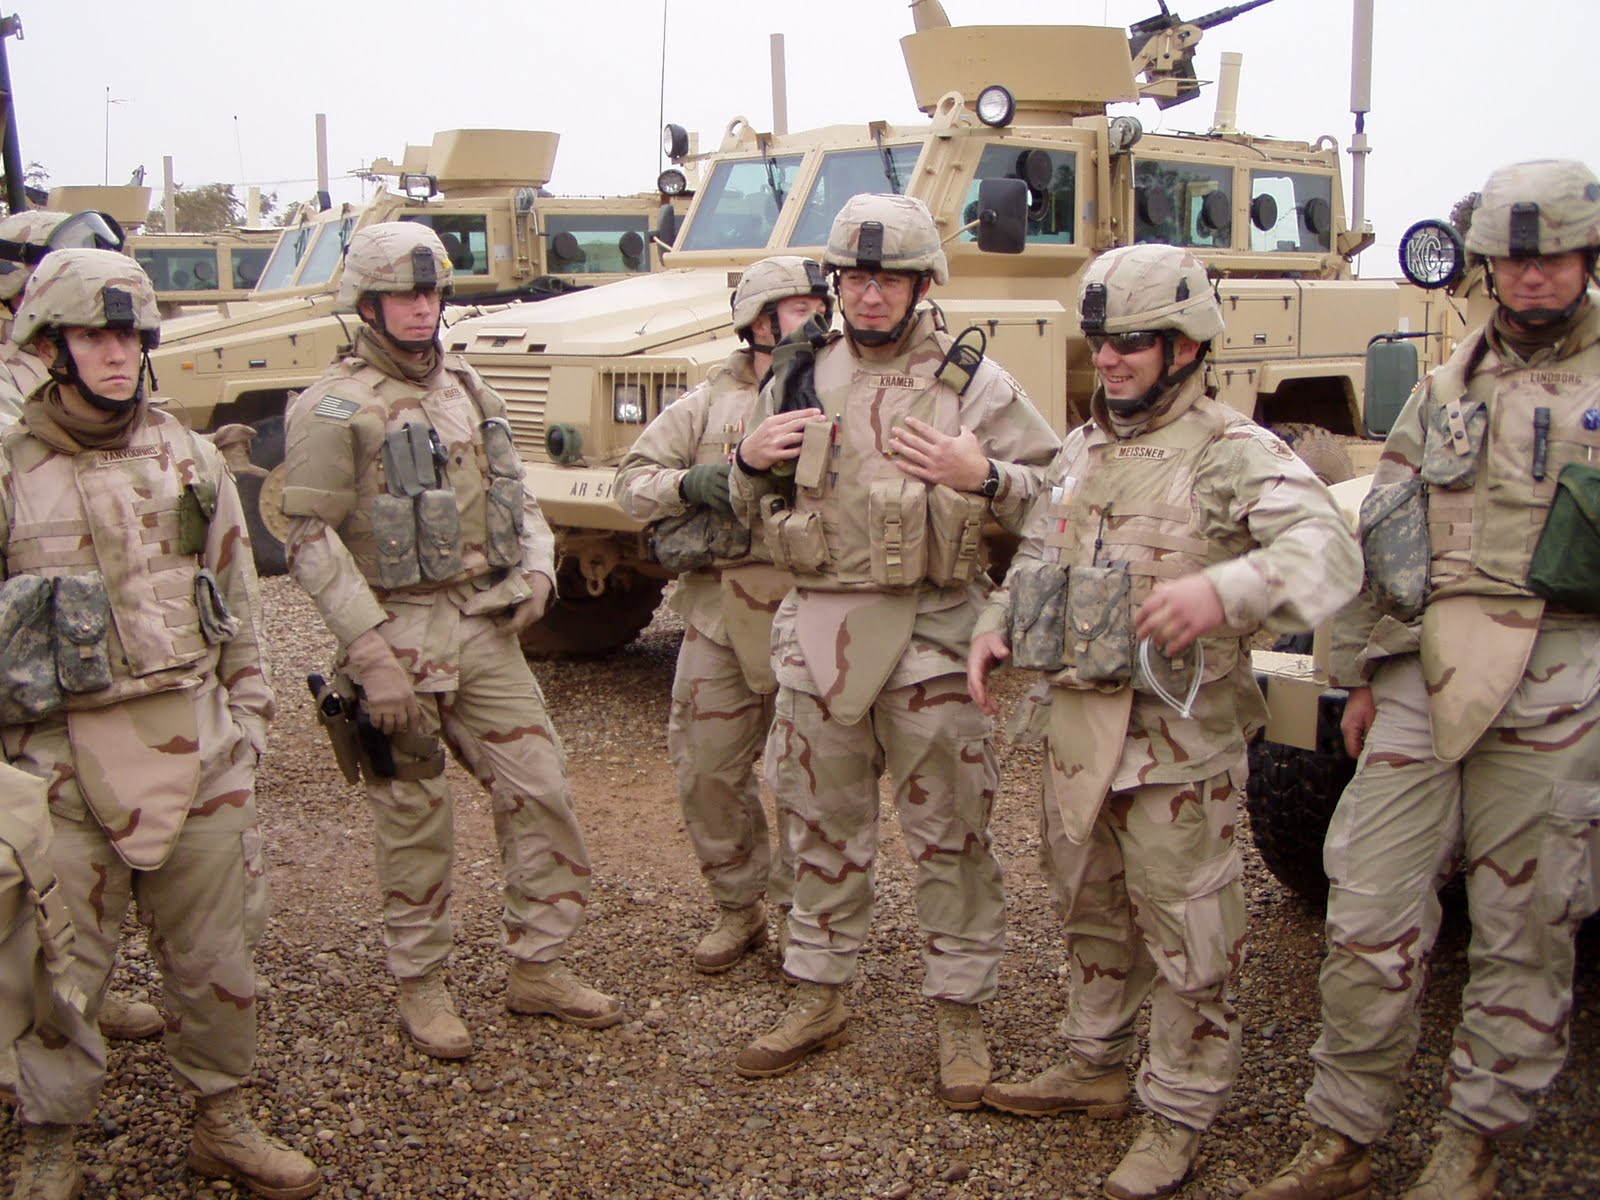 rg-31s-in-iraq-with-troops